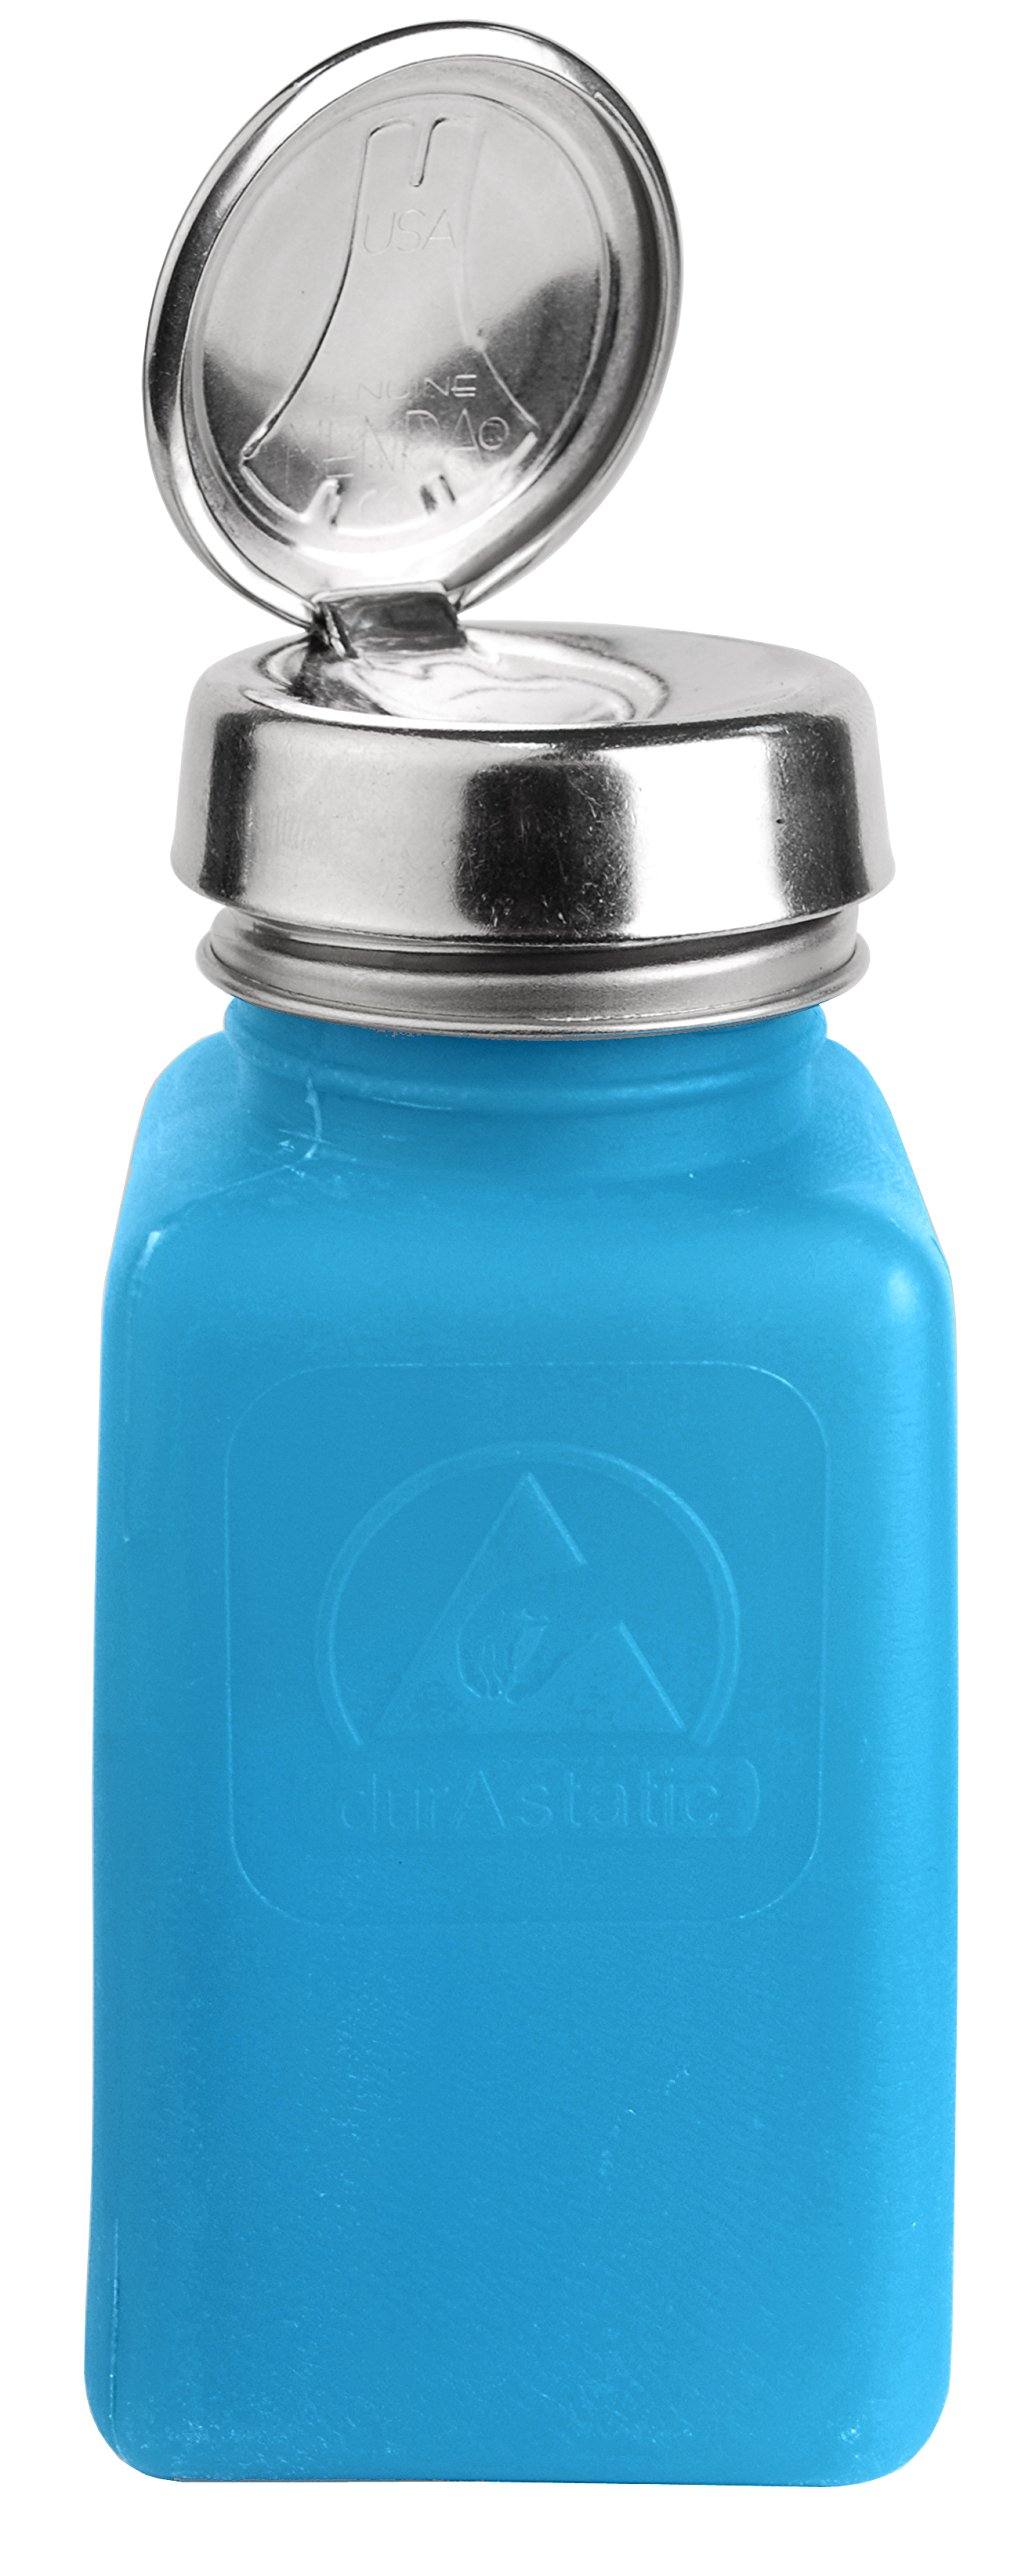 MENDA 35283 One Touch Stainless Steel Liquid Dispenser Pump, ESD Safe durAstatic Square Bottle, 6 oz, High Density Polyethylene/Stainless Steel, Blue